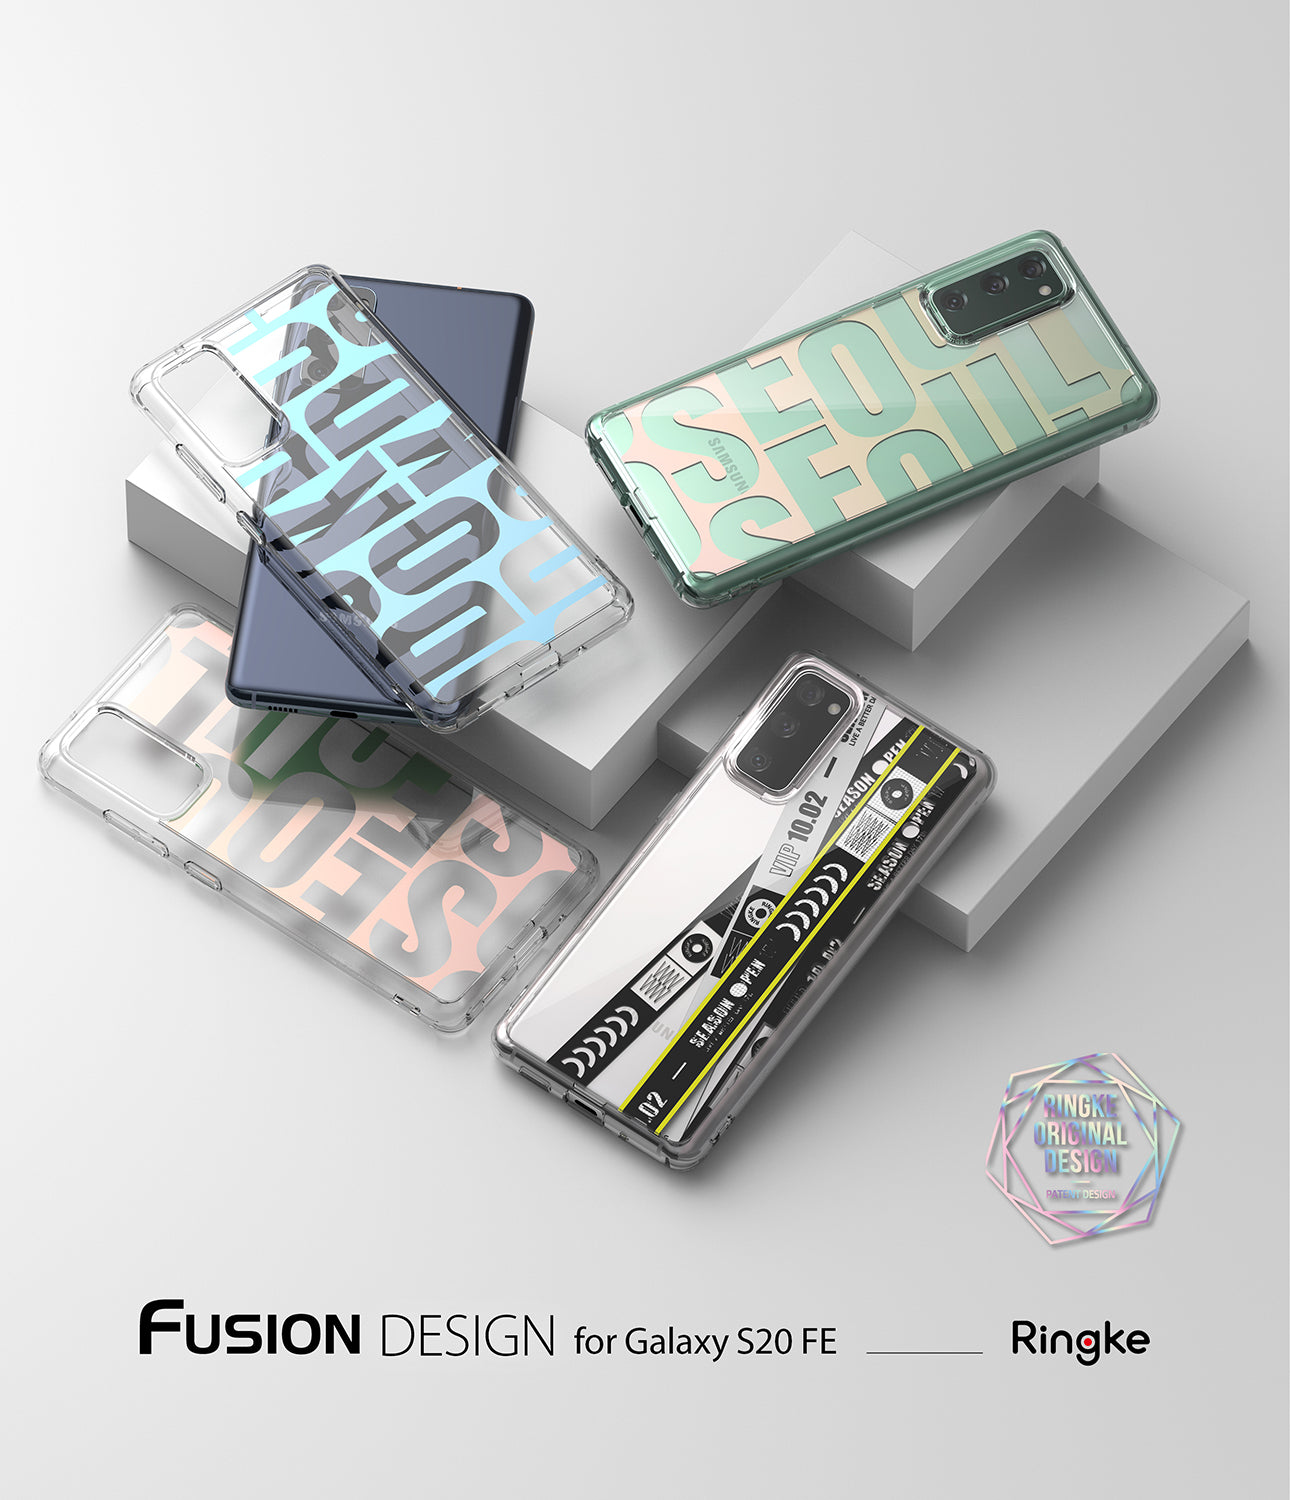 ringke fusion design case for samsung galaxy s20 fe - seoul